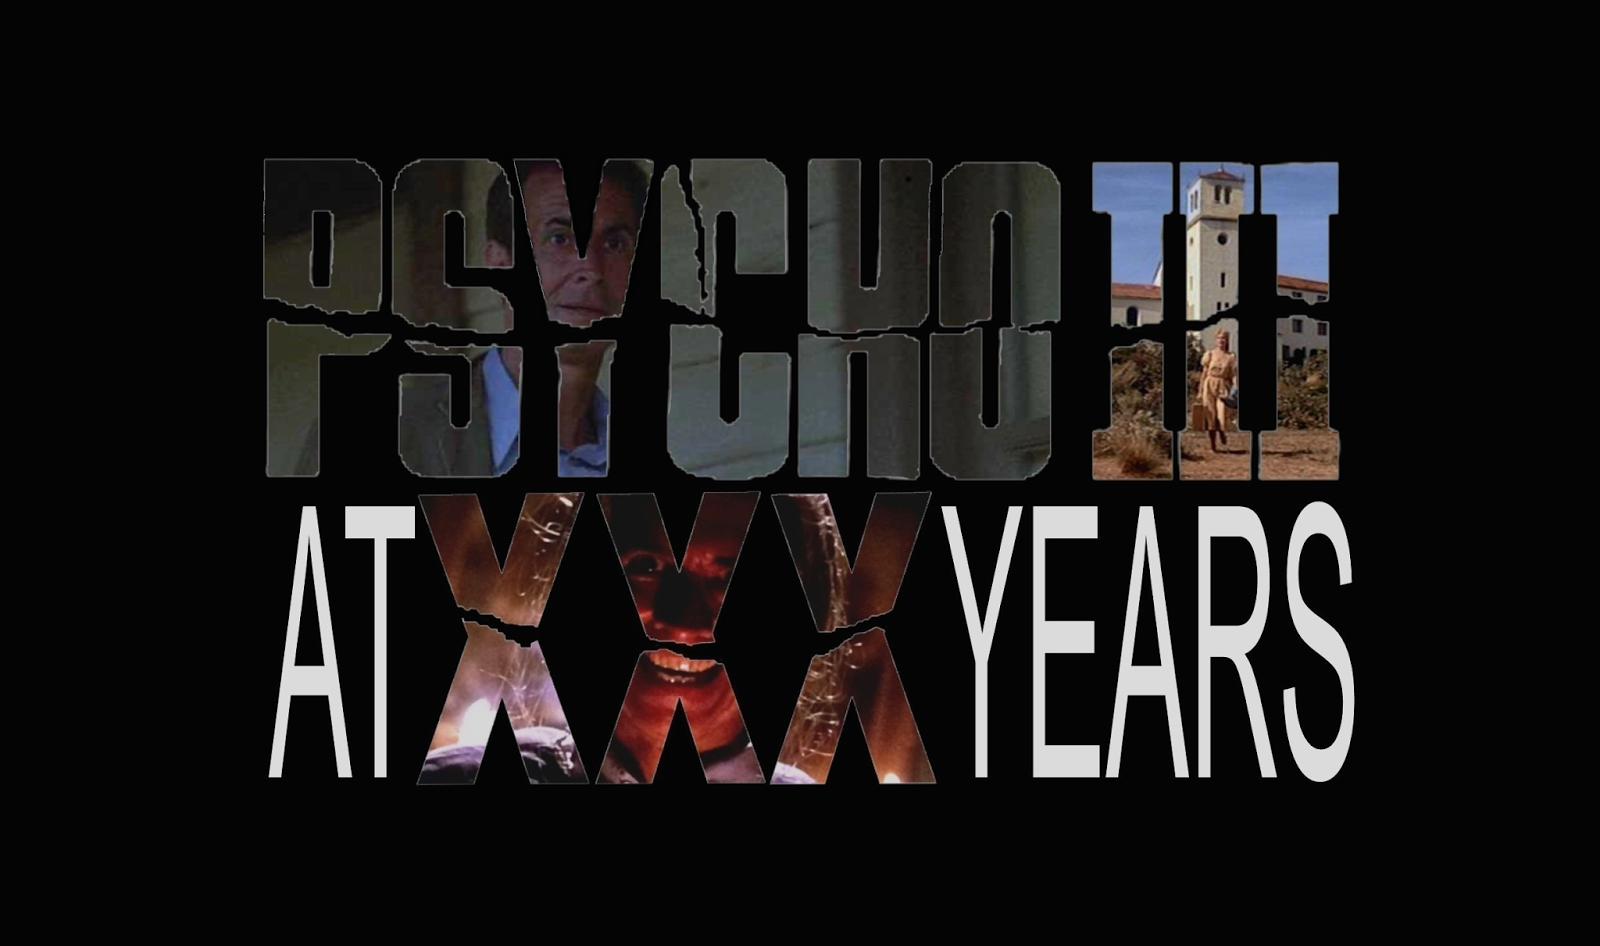 slivers of cinema psycho iii at xxx years 2 2016 will mark 30 years since the us release of psycho iii the following essay reflects upon the themes characters and other distinguishing